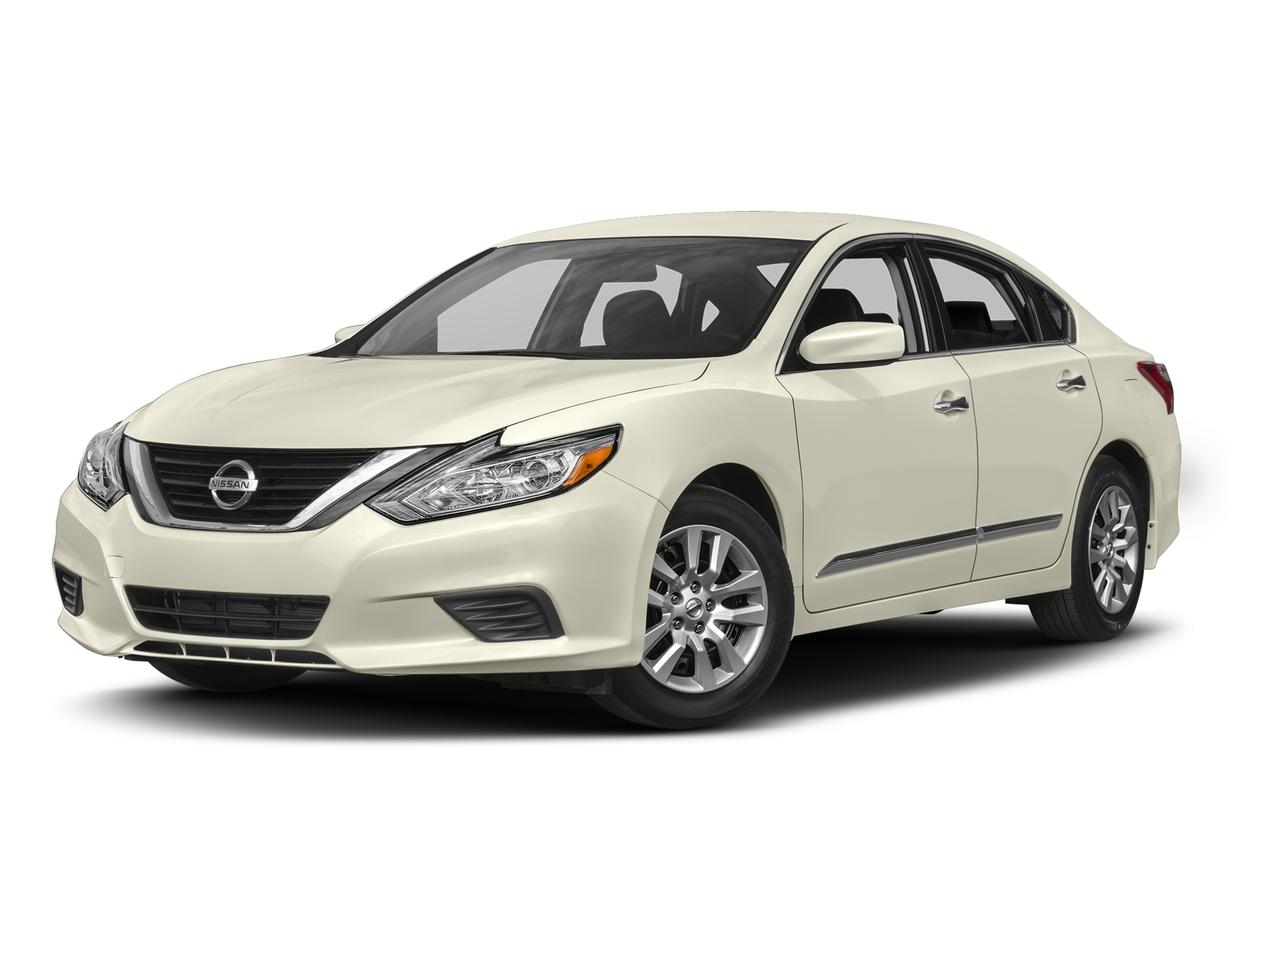 2017 Nissan Altima Vehicle Photo in Quakertown, PA 18951